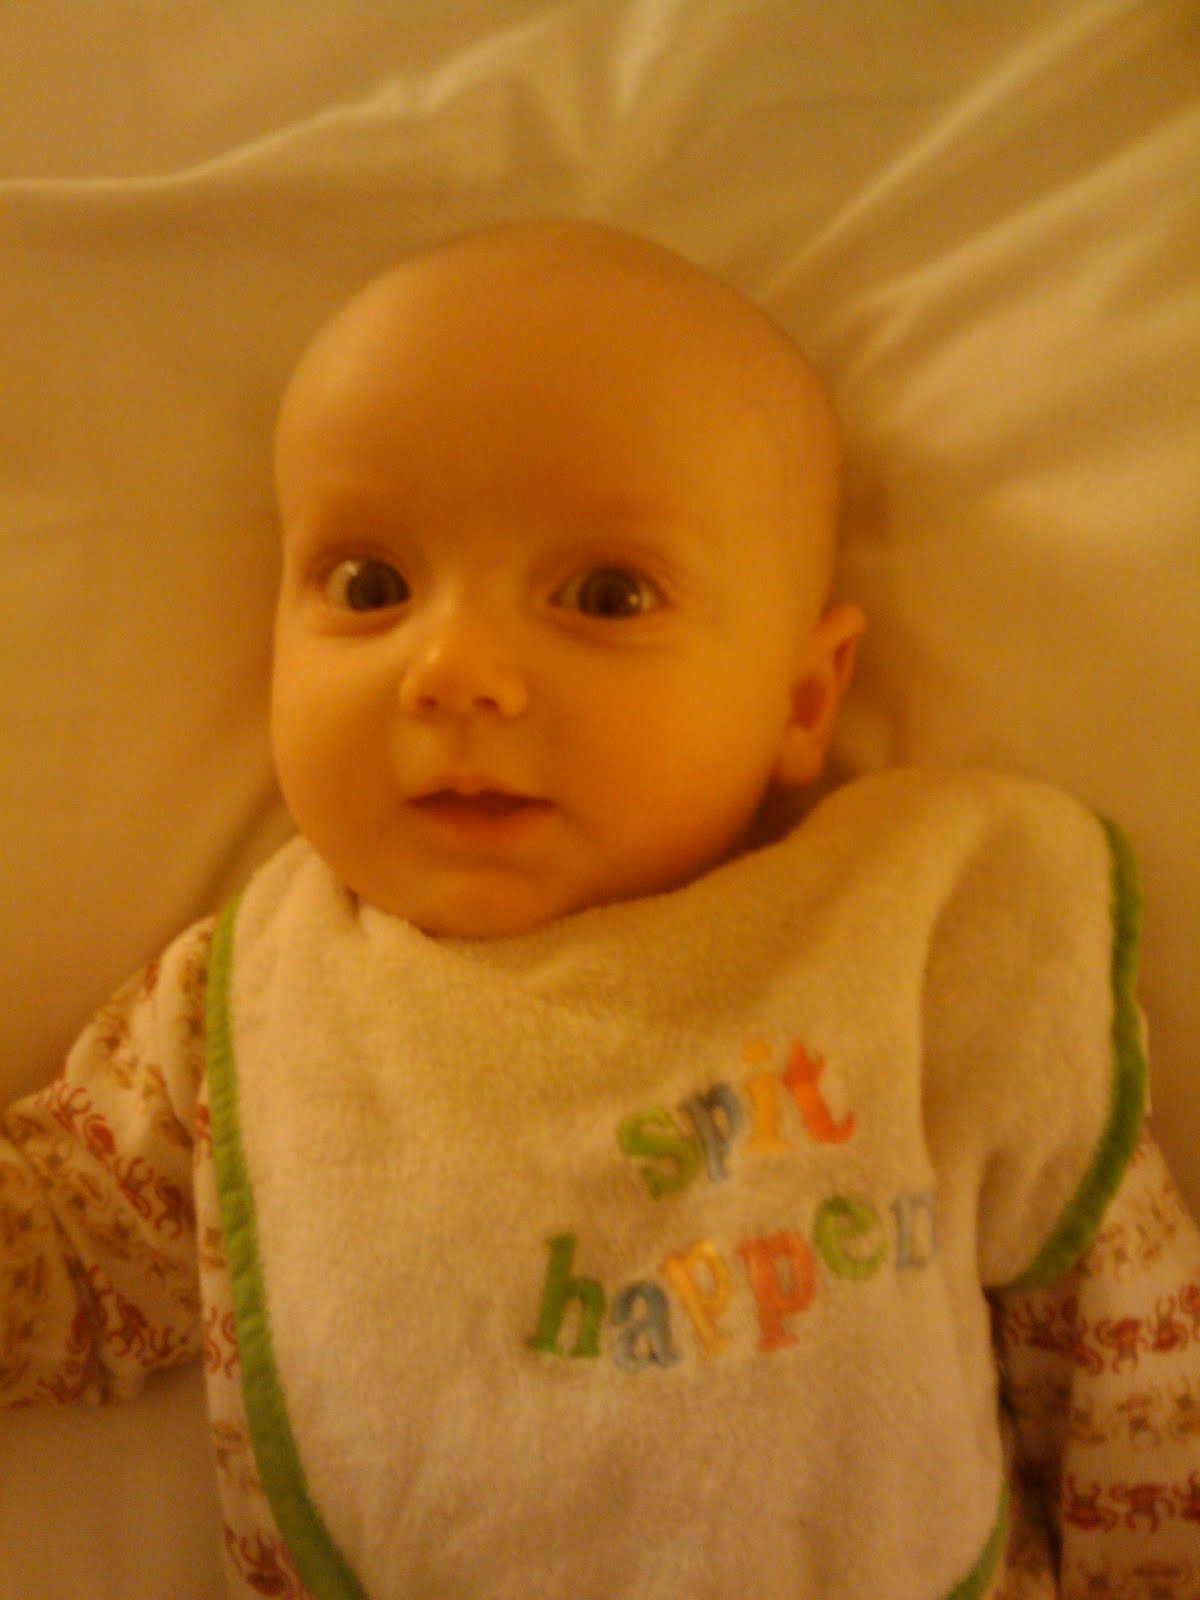 The Pregnant Pause: I love adorable, bald, round-headed babies